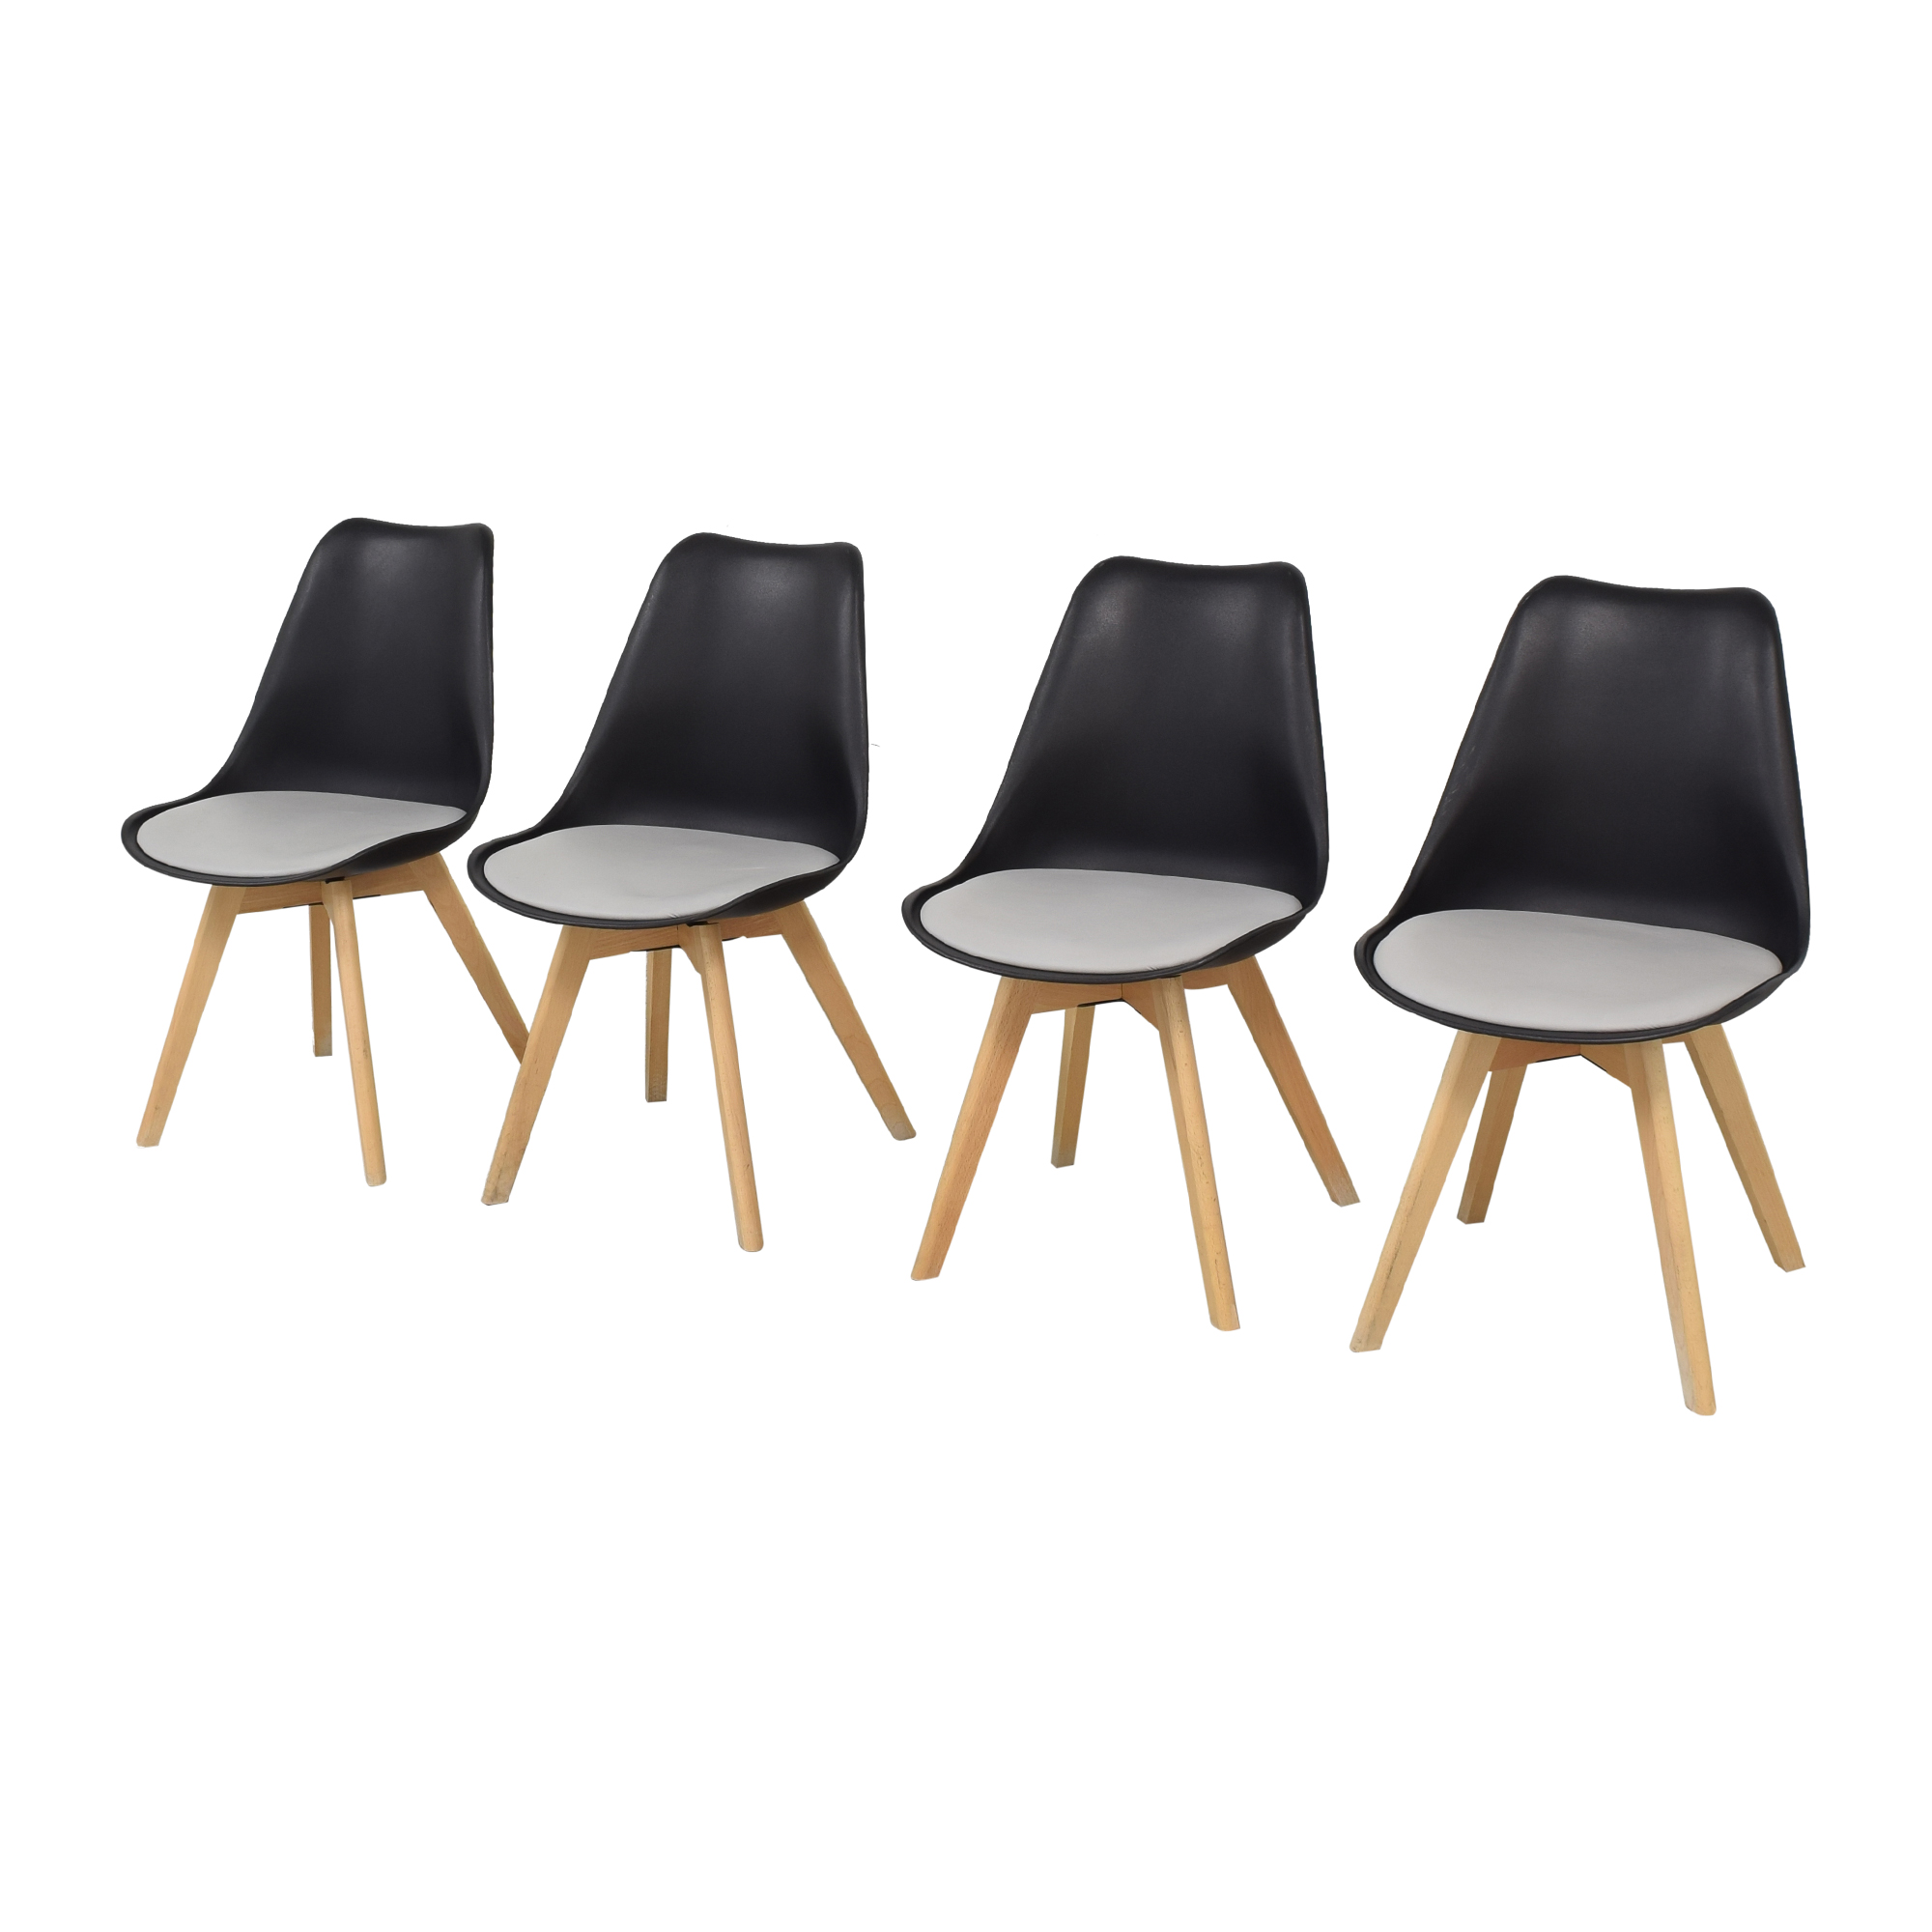 Black Molded Plastic Chairs with Wooden Legs ct